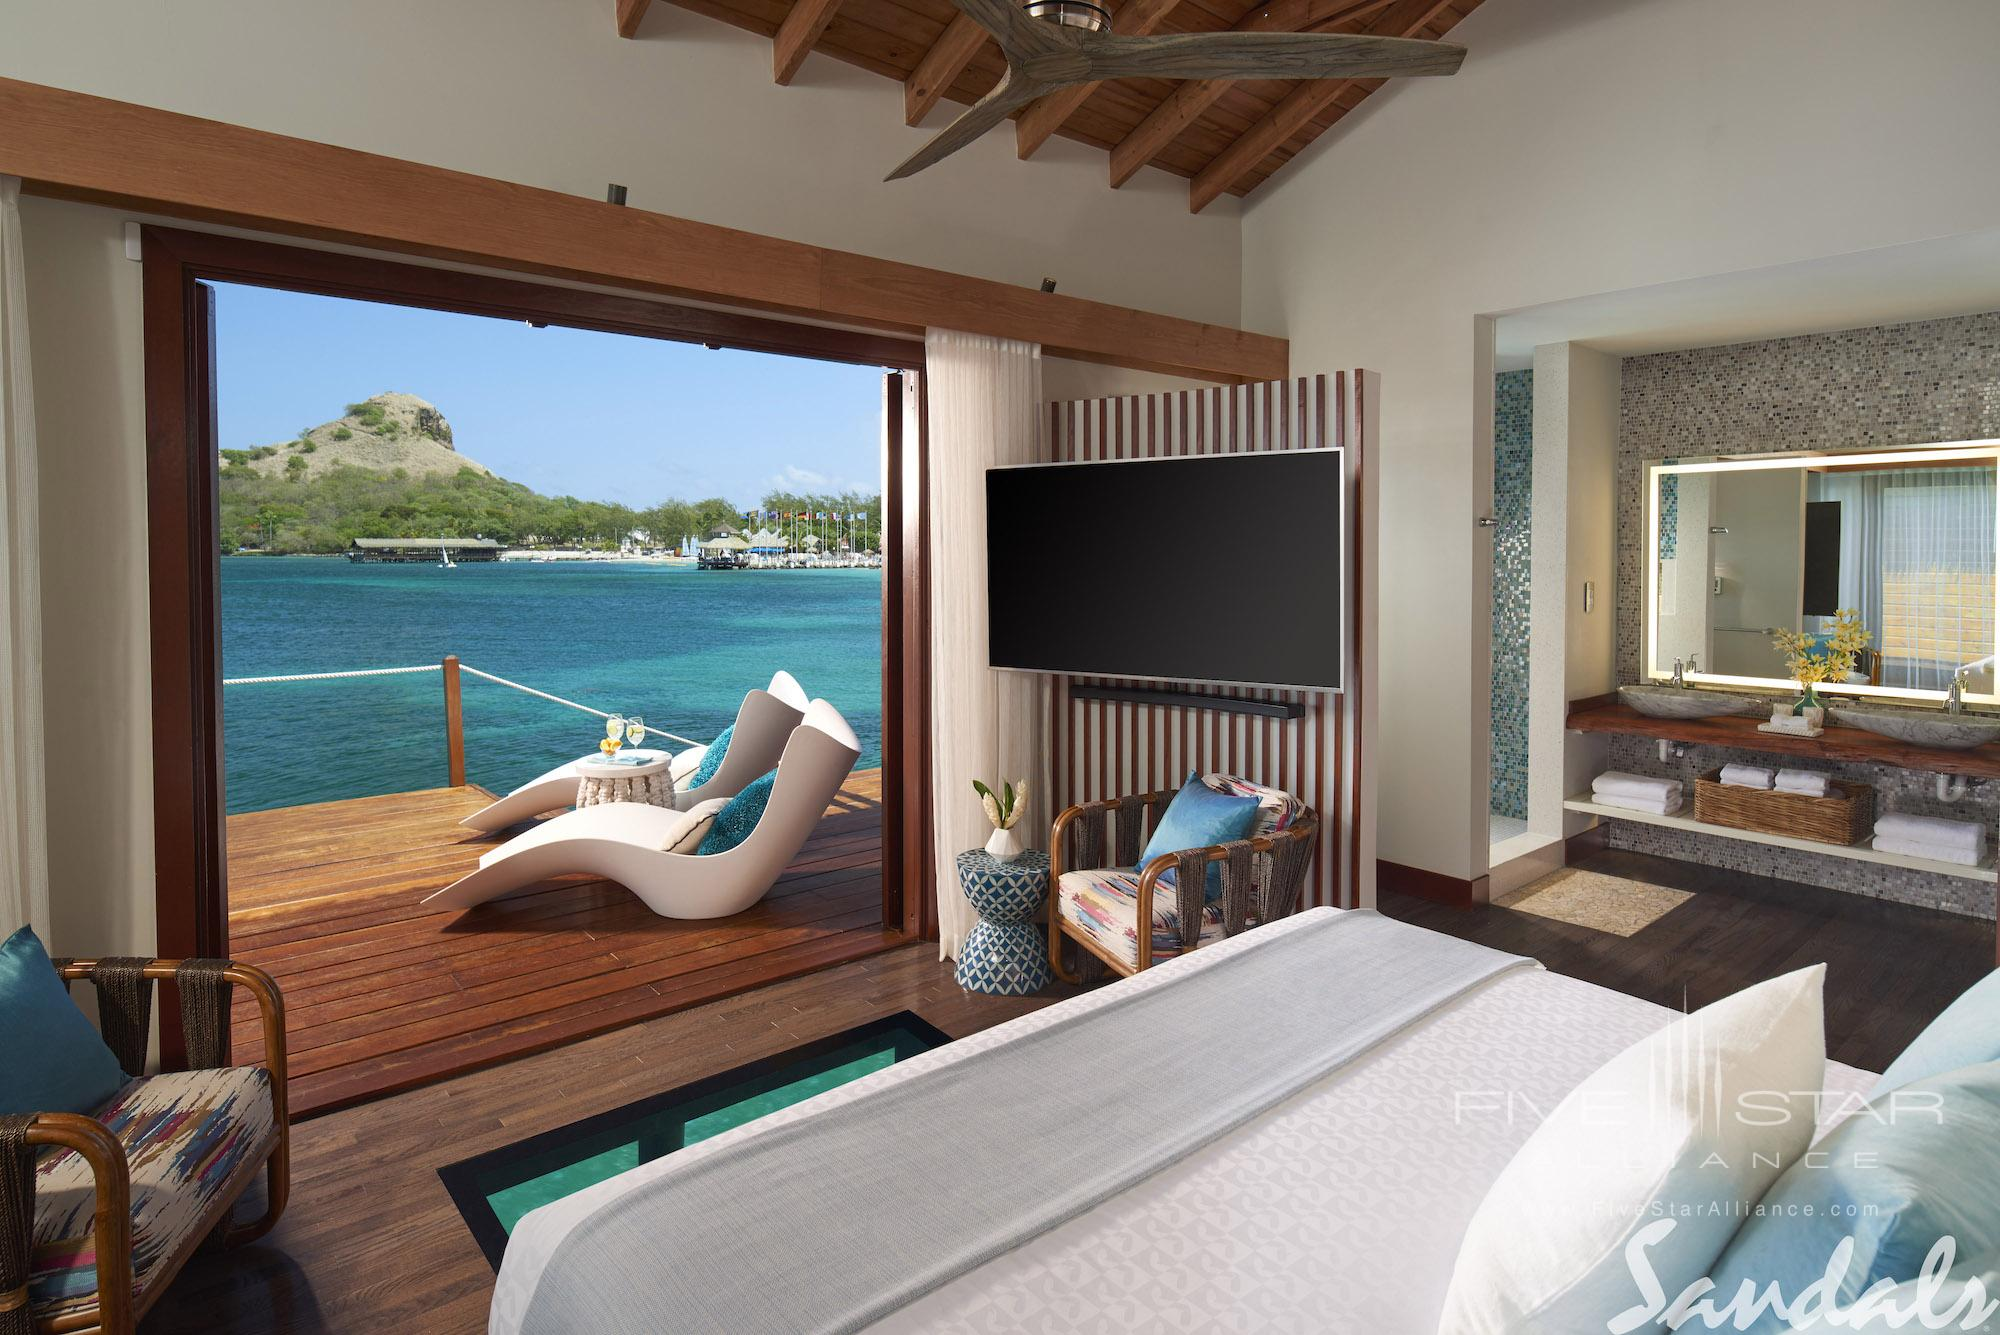 Over-The-Water Bungalow at Sandals Grande St. Lucian